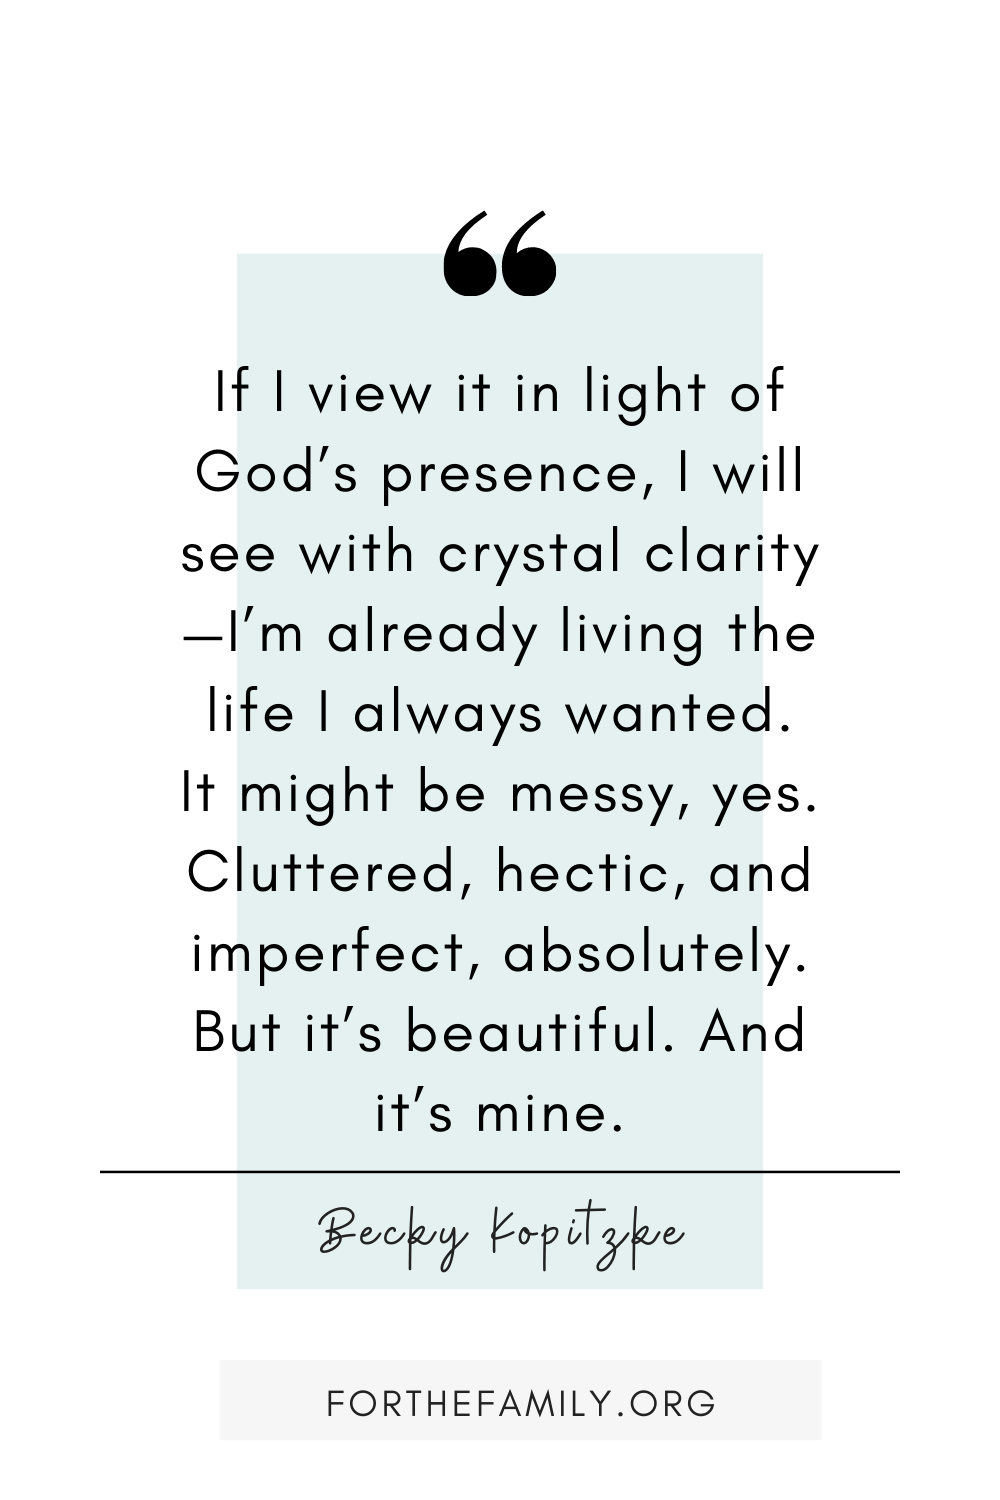 If I view it in light of God's presence, I will see with crystal clarity—I'm already living the life I always wanted. It might be messy, yes. Cluttered, hectic, and imperfect, absolutely. But it's beautiful. And it's mine. - Becky Kopitzke